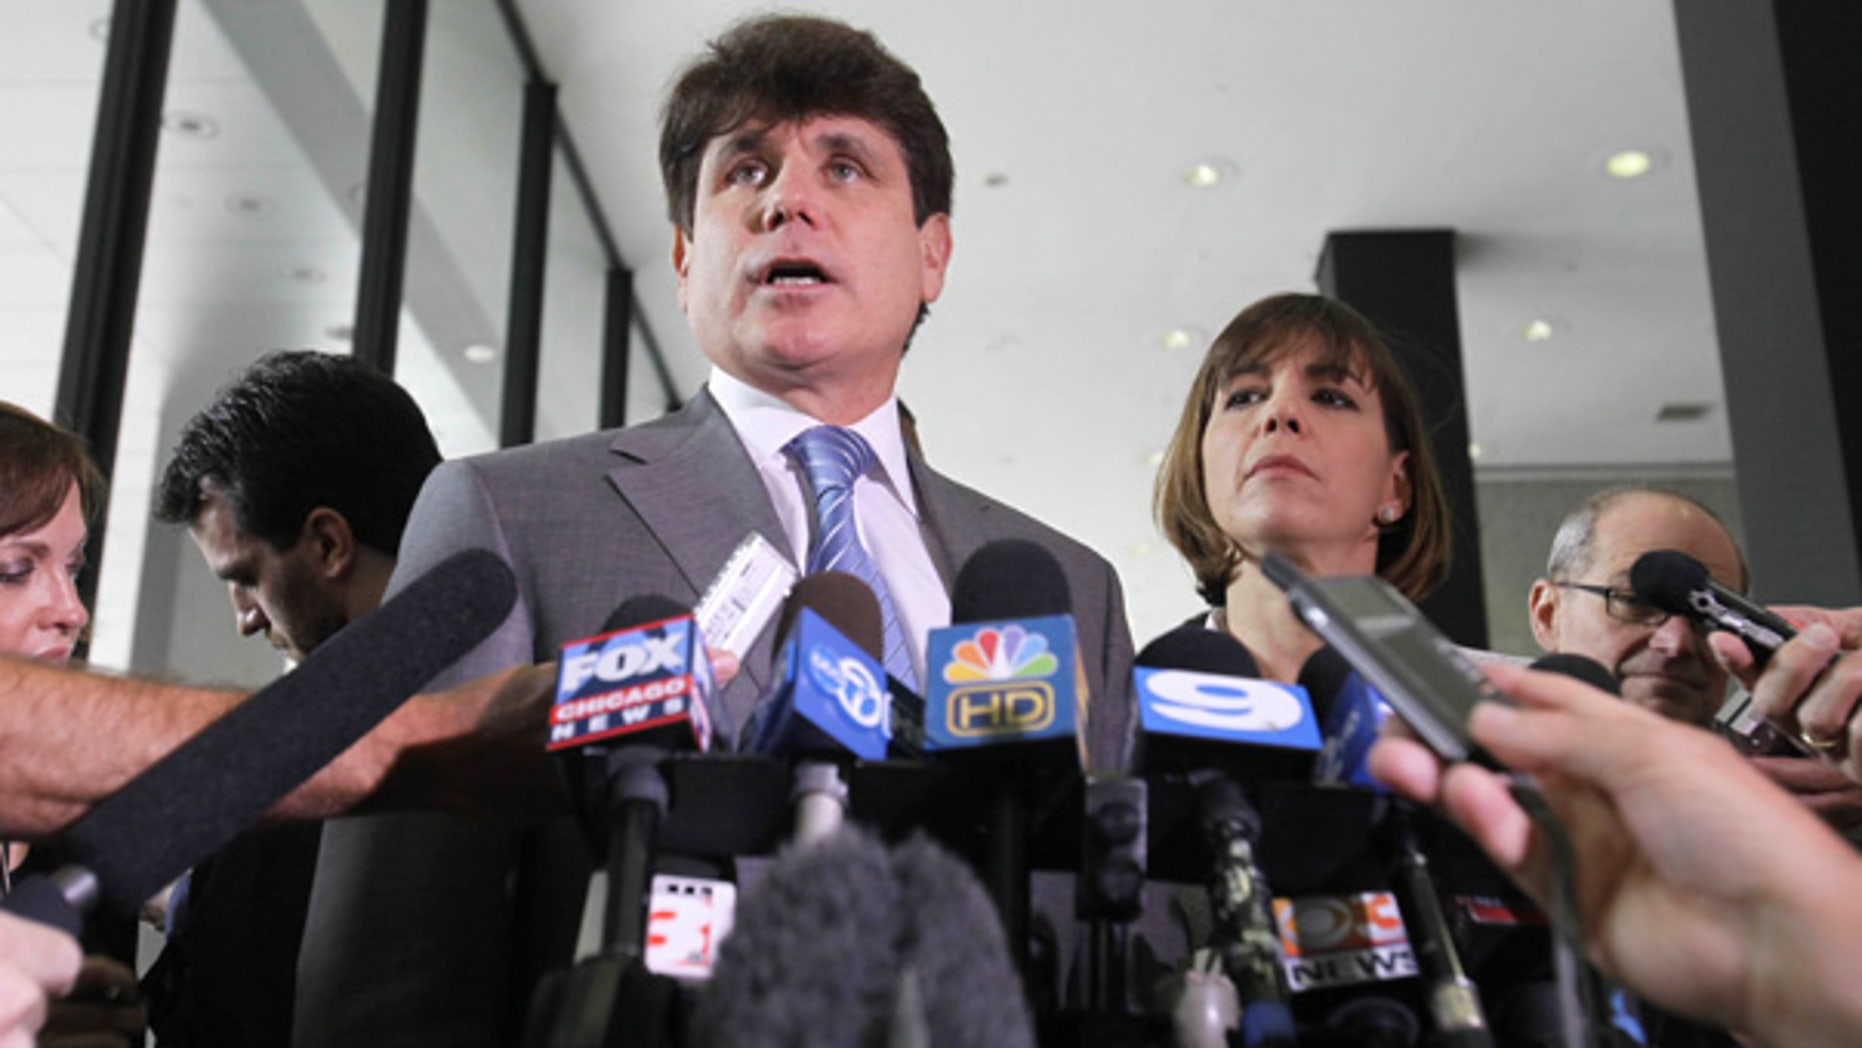 July 28: Former Illinois Gov. Rod Blagojevich speaks to the media at the Federal Court building in Chicago